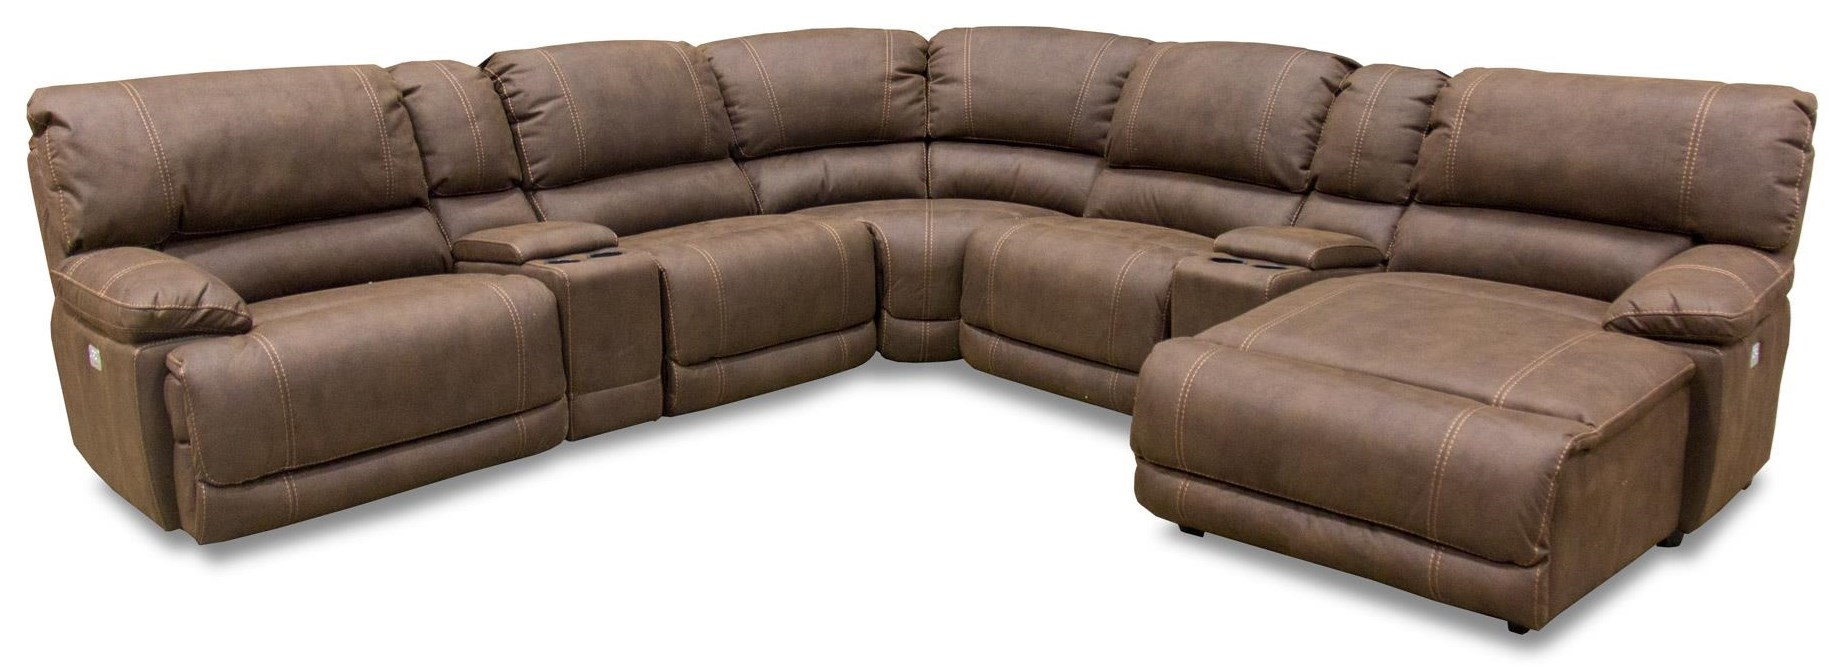 reclining mage sofa out door foot beauty salon furniture bed model